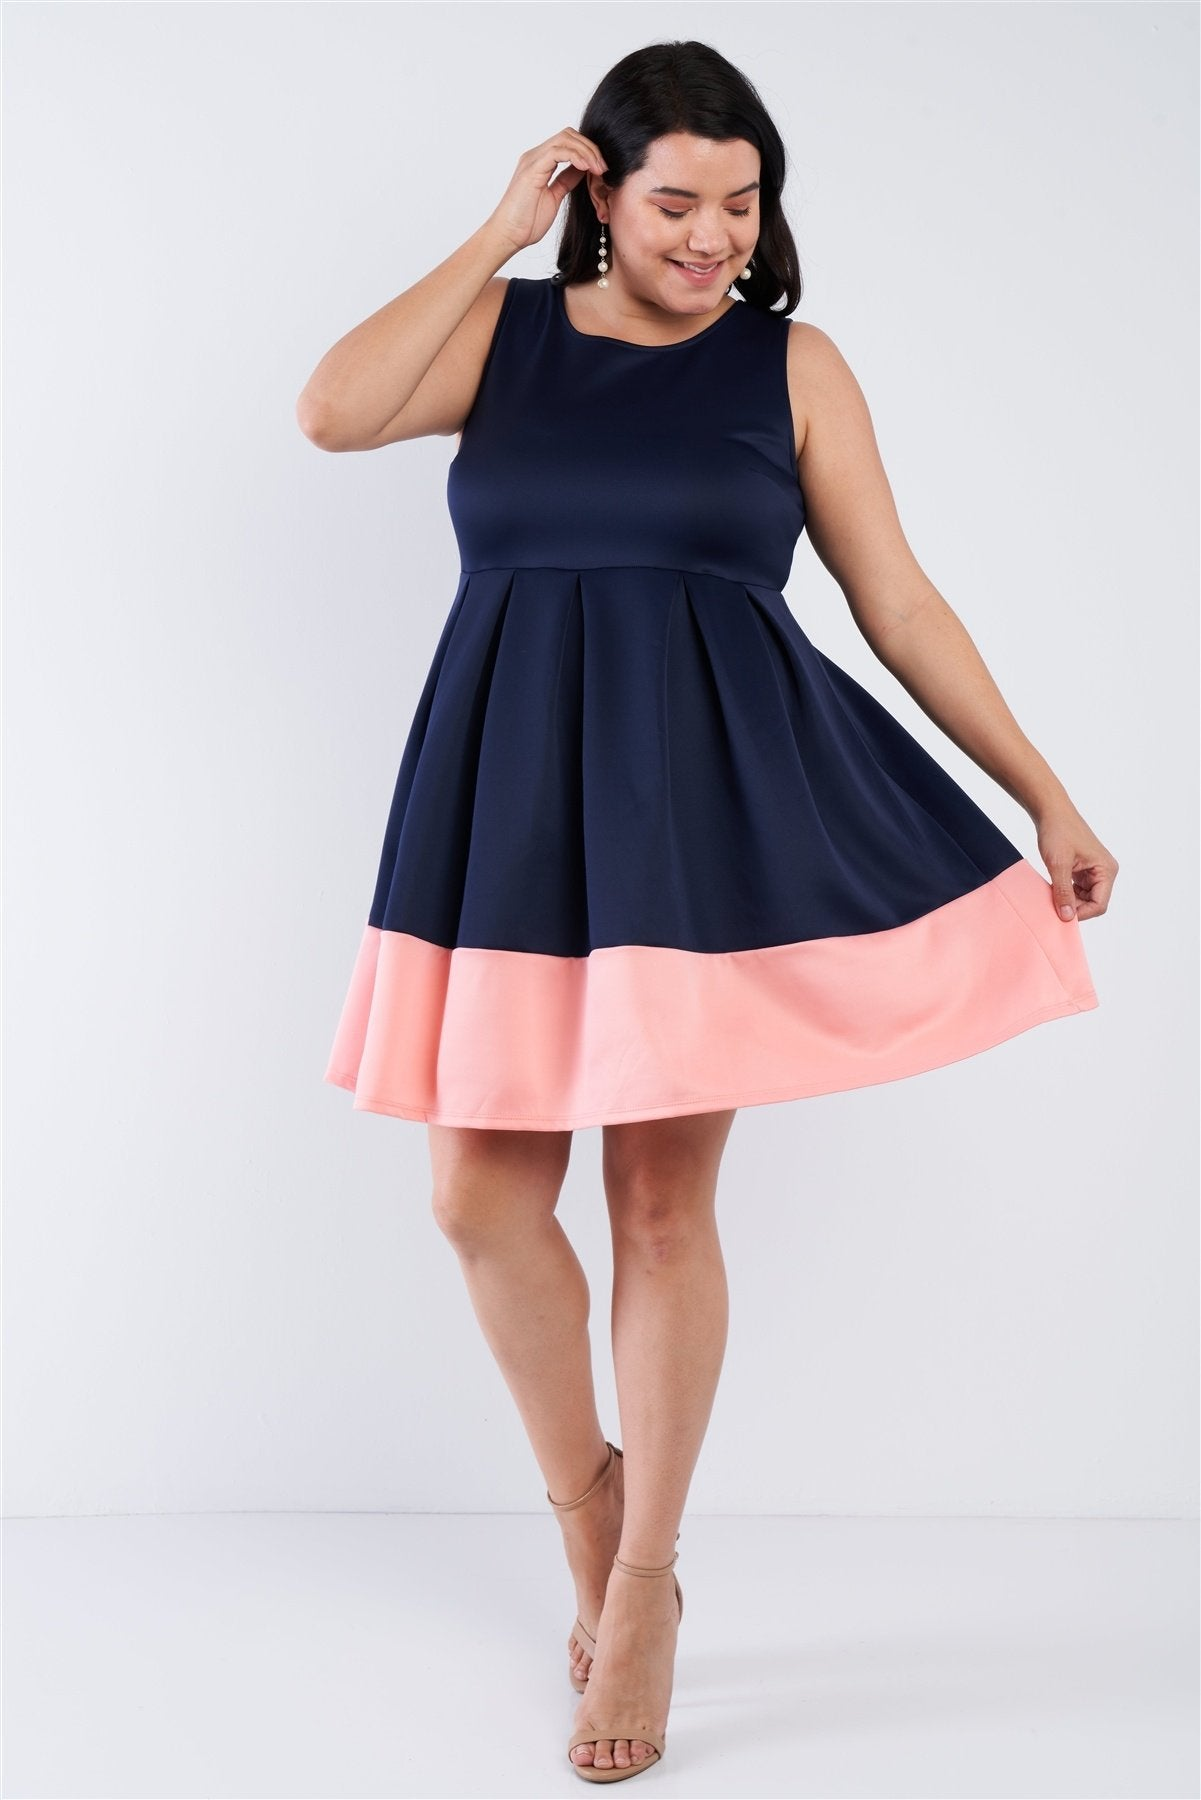 Plus Size Navy Pleated Colorblock Mini Dress - Absolute Fashion 2020